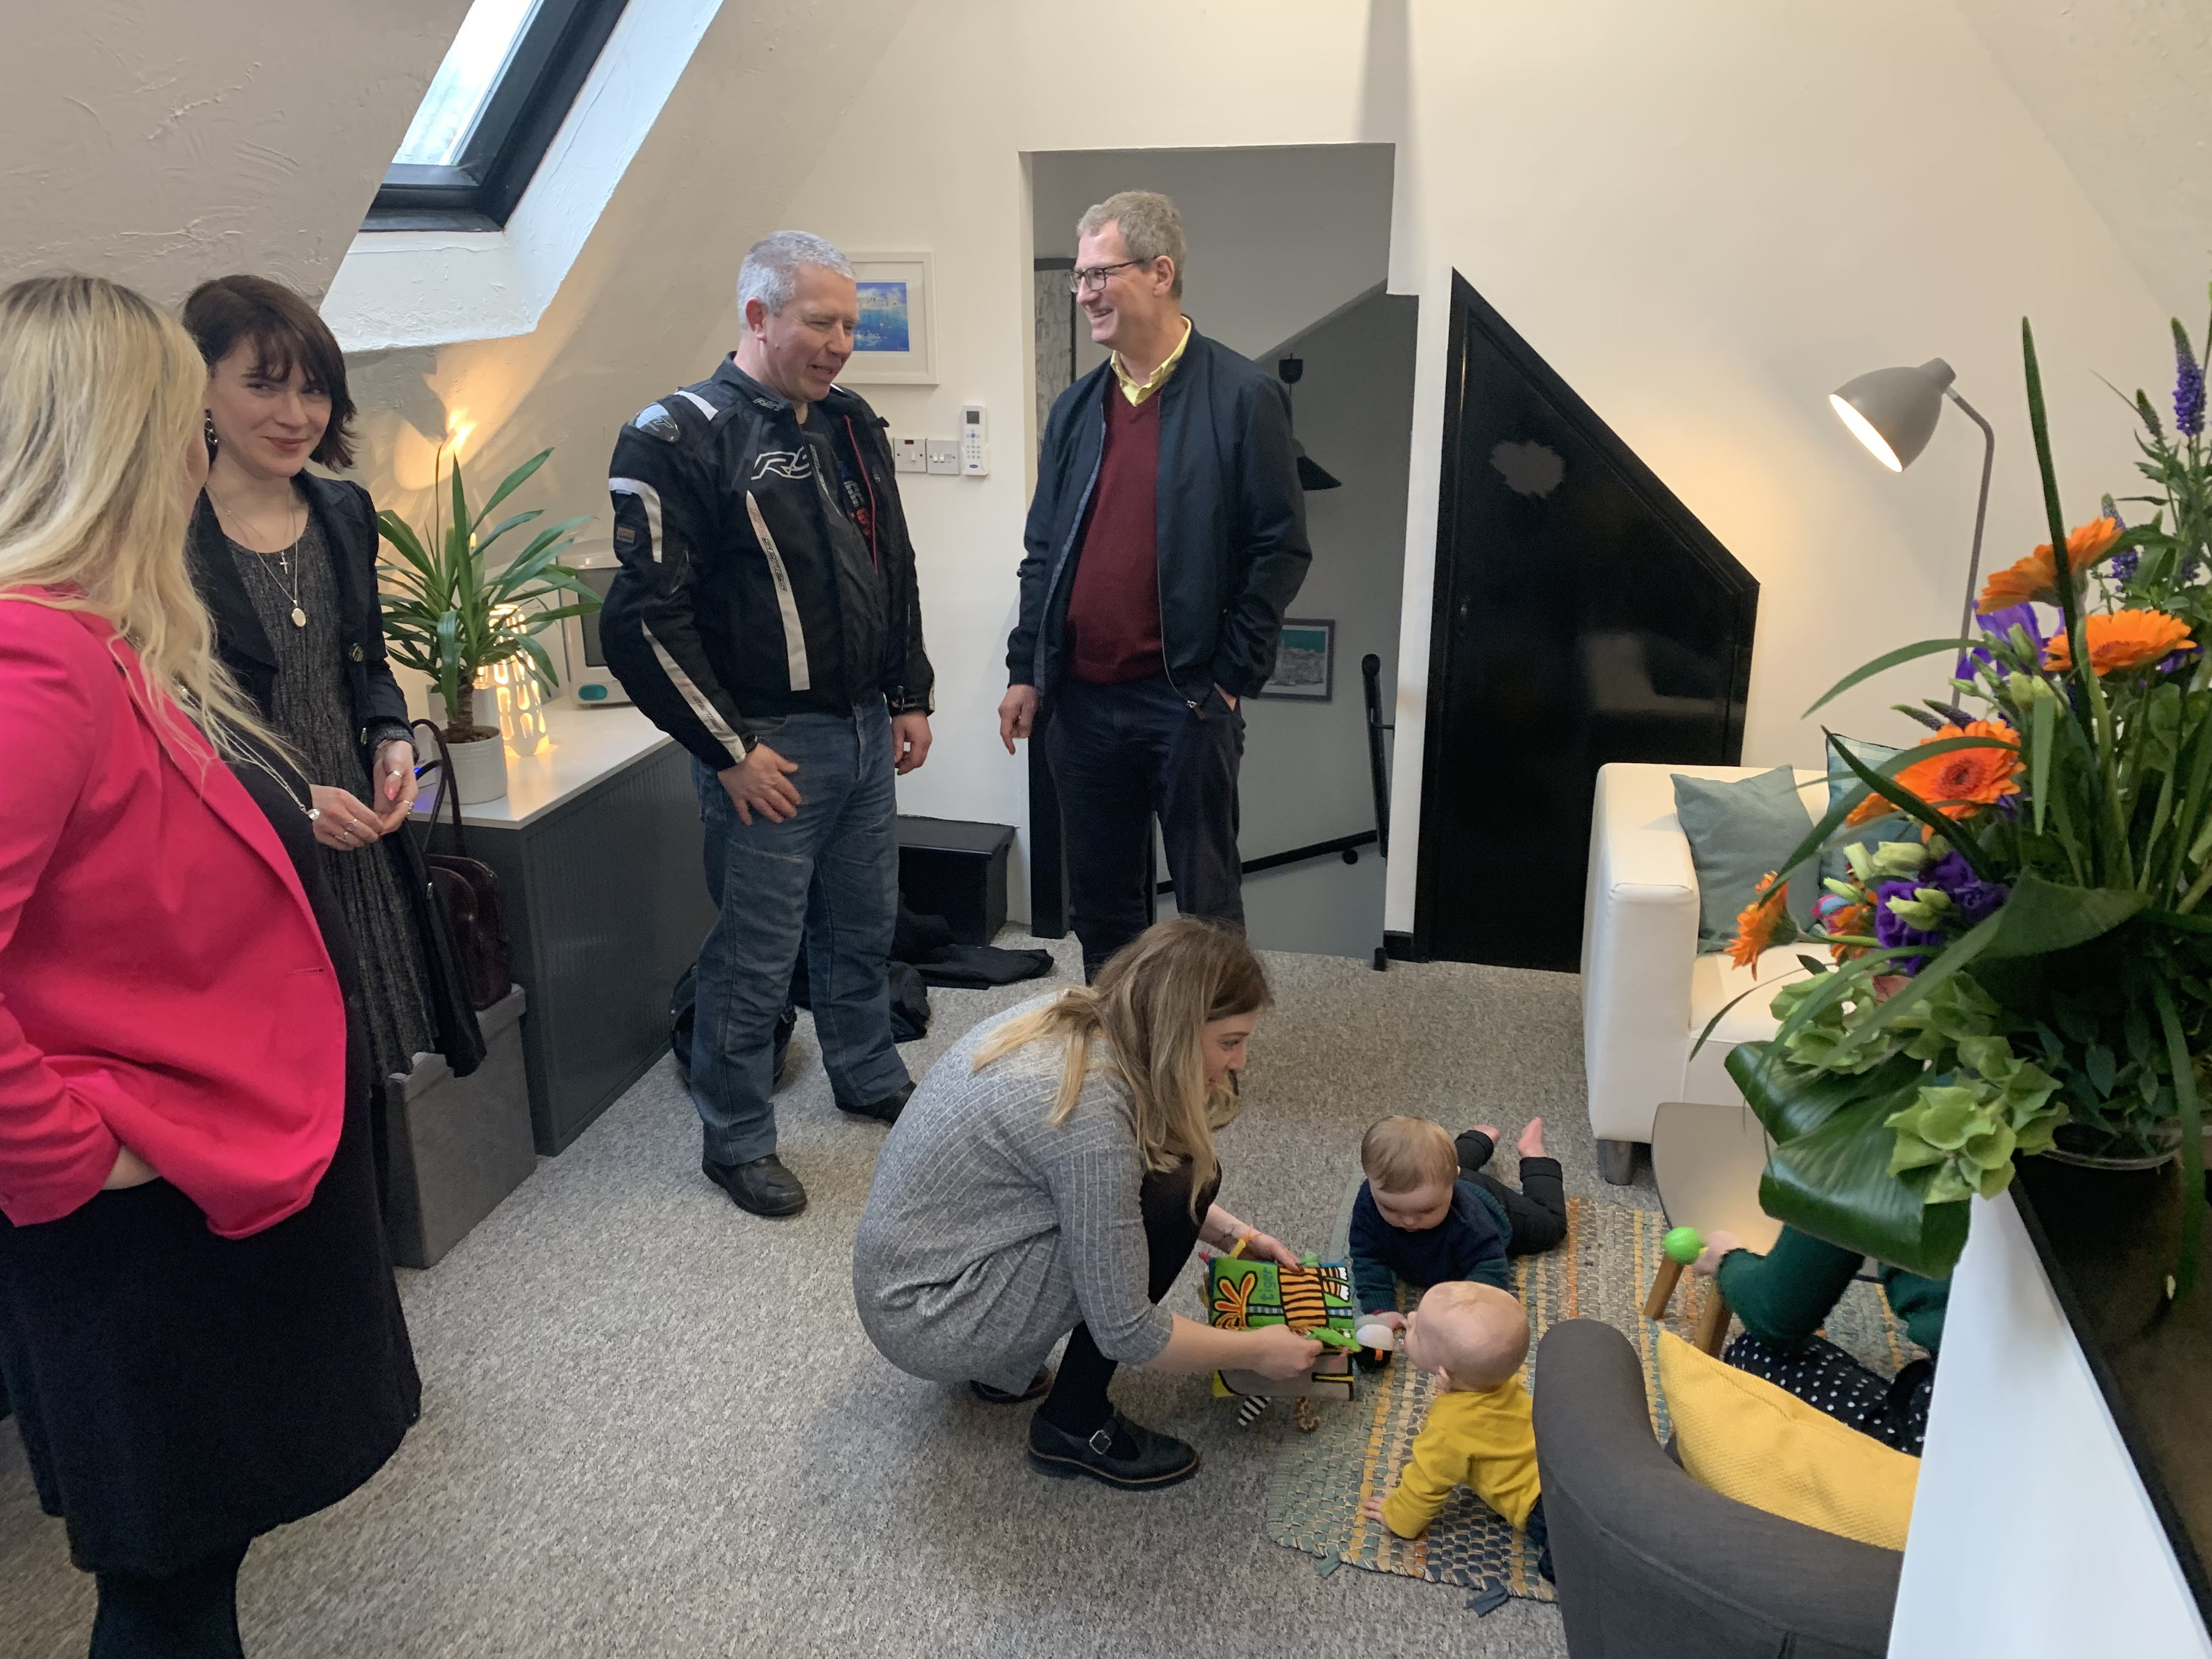 Infiniti Graphics welcomed more than 50 local business clients, friends and Mayor of Ely Mike Rouse to their new office